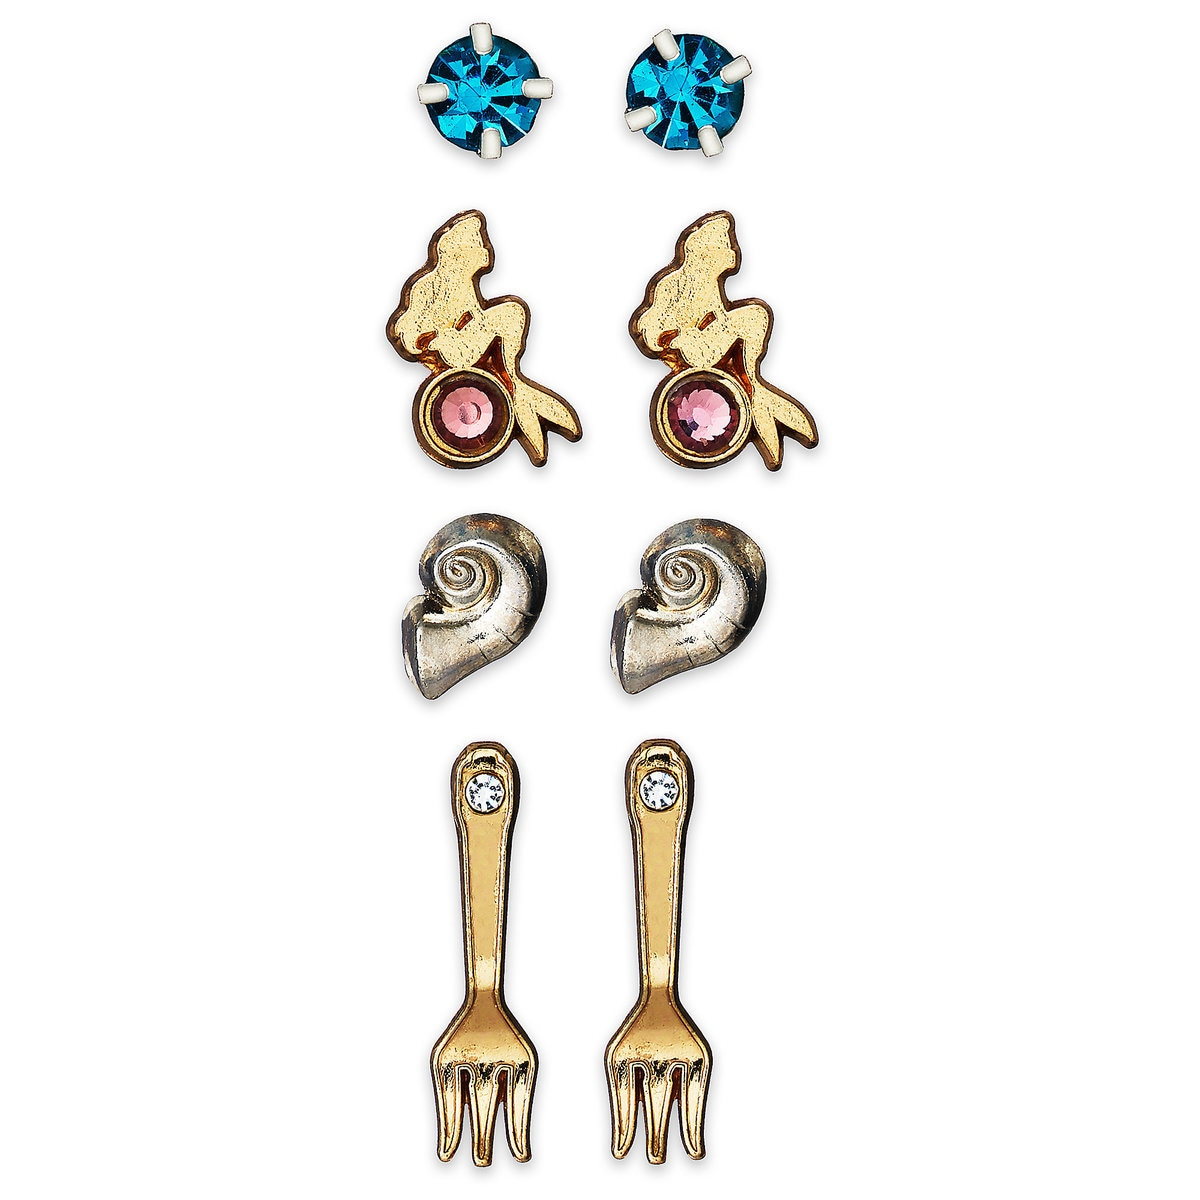 495ec7d40 Product Image of Ariel Jewelry and Tray Set # 1